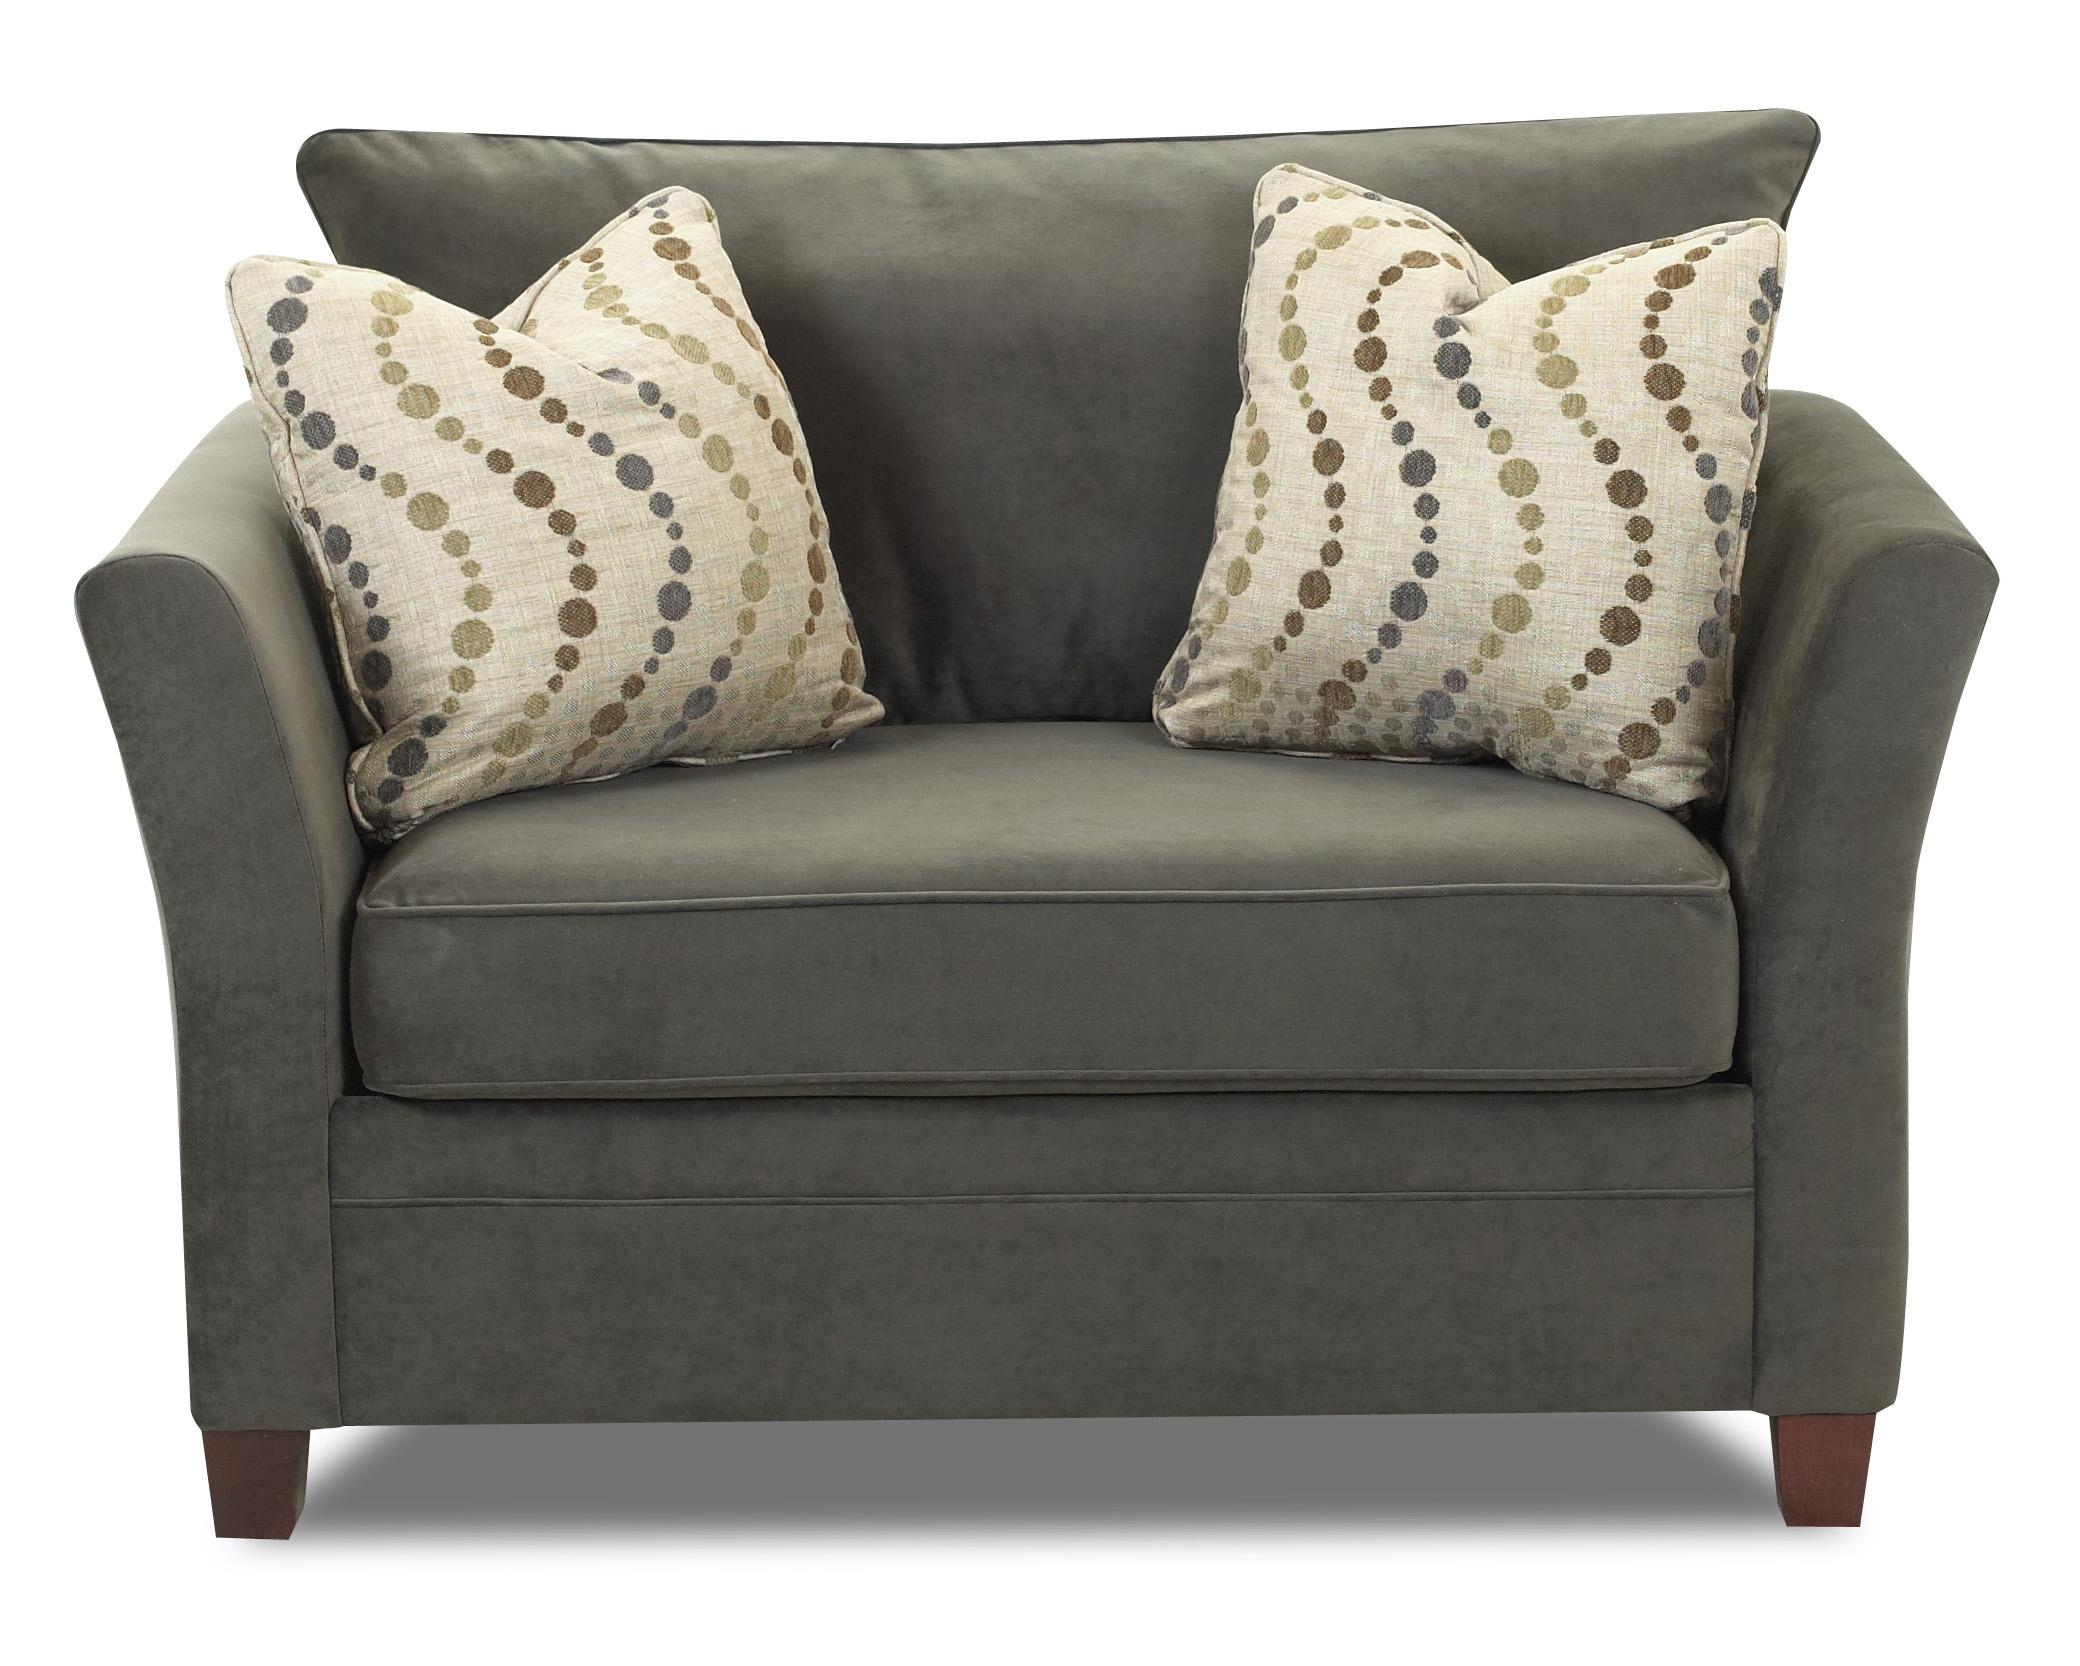 Comfy Oversized Chair Klaussner Taylor Contemporary Chair And A Half H L